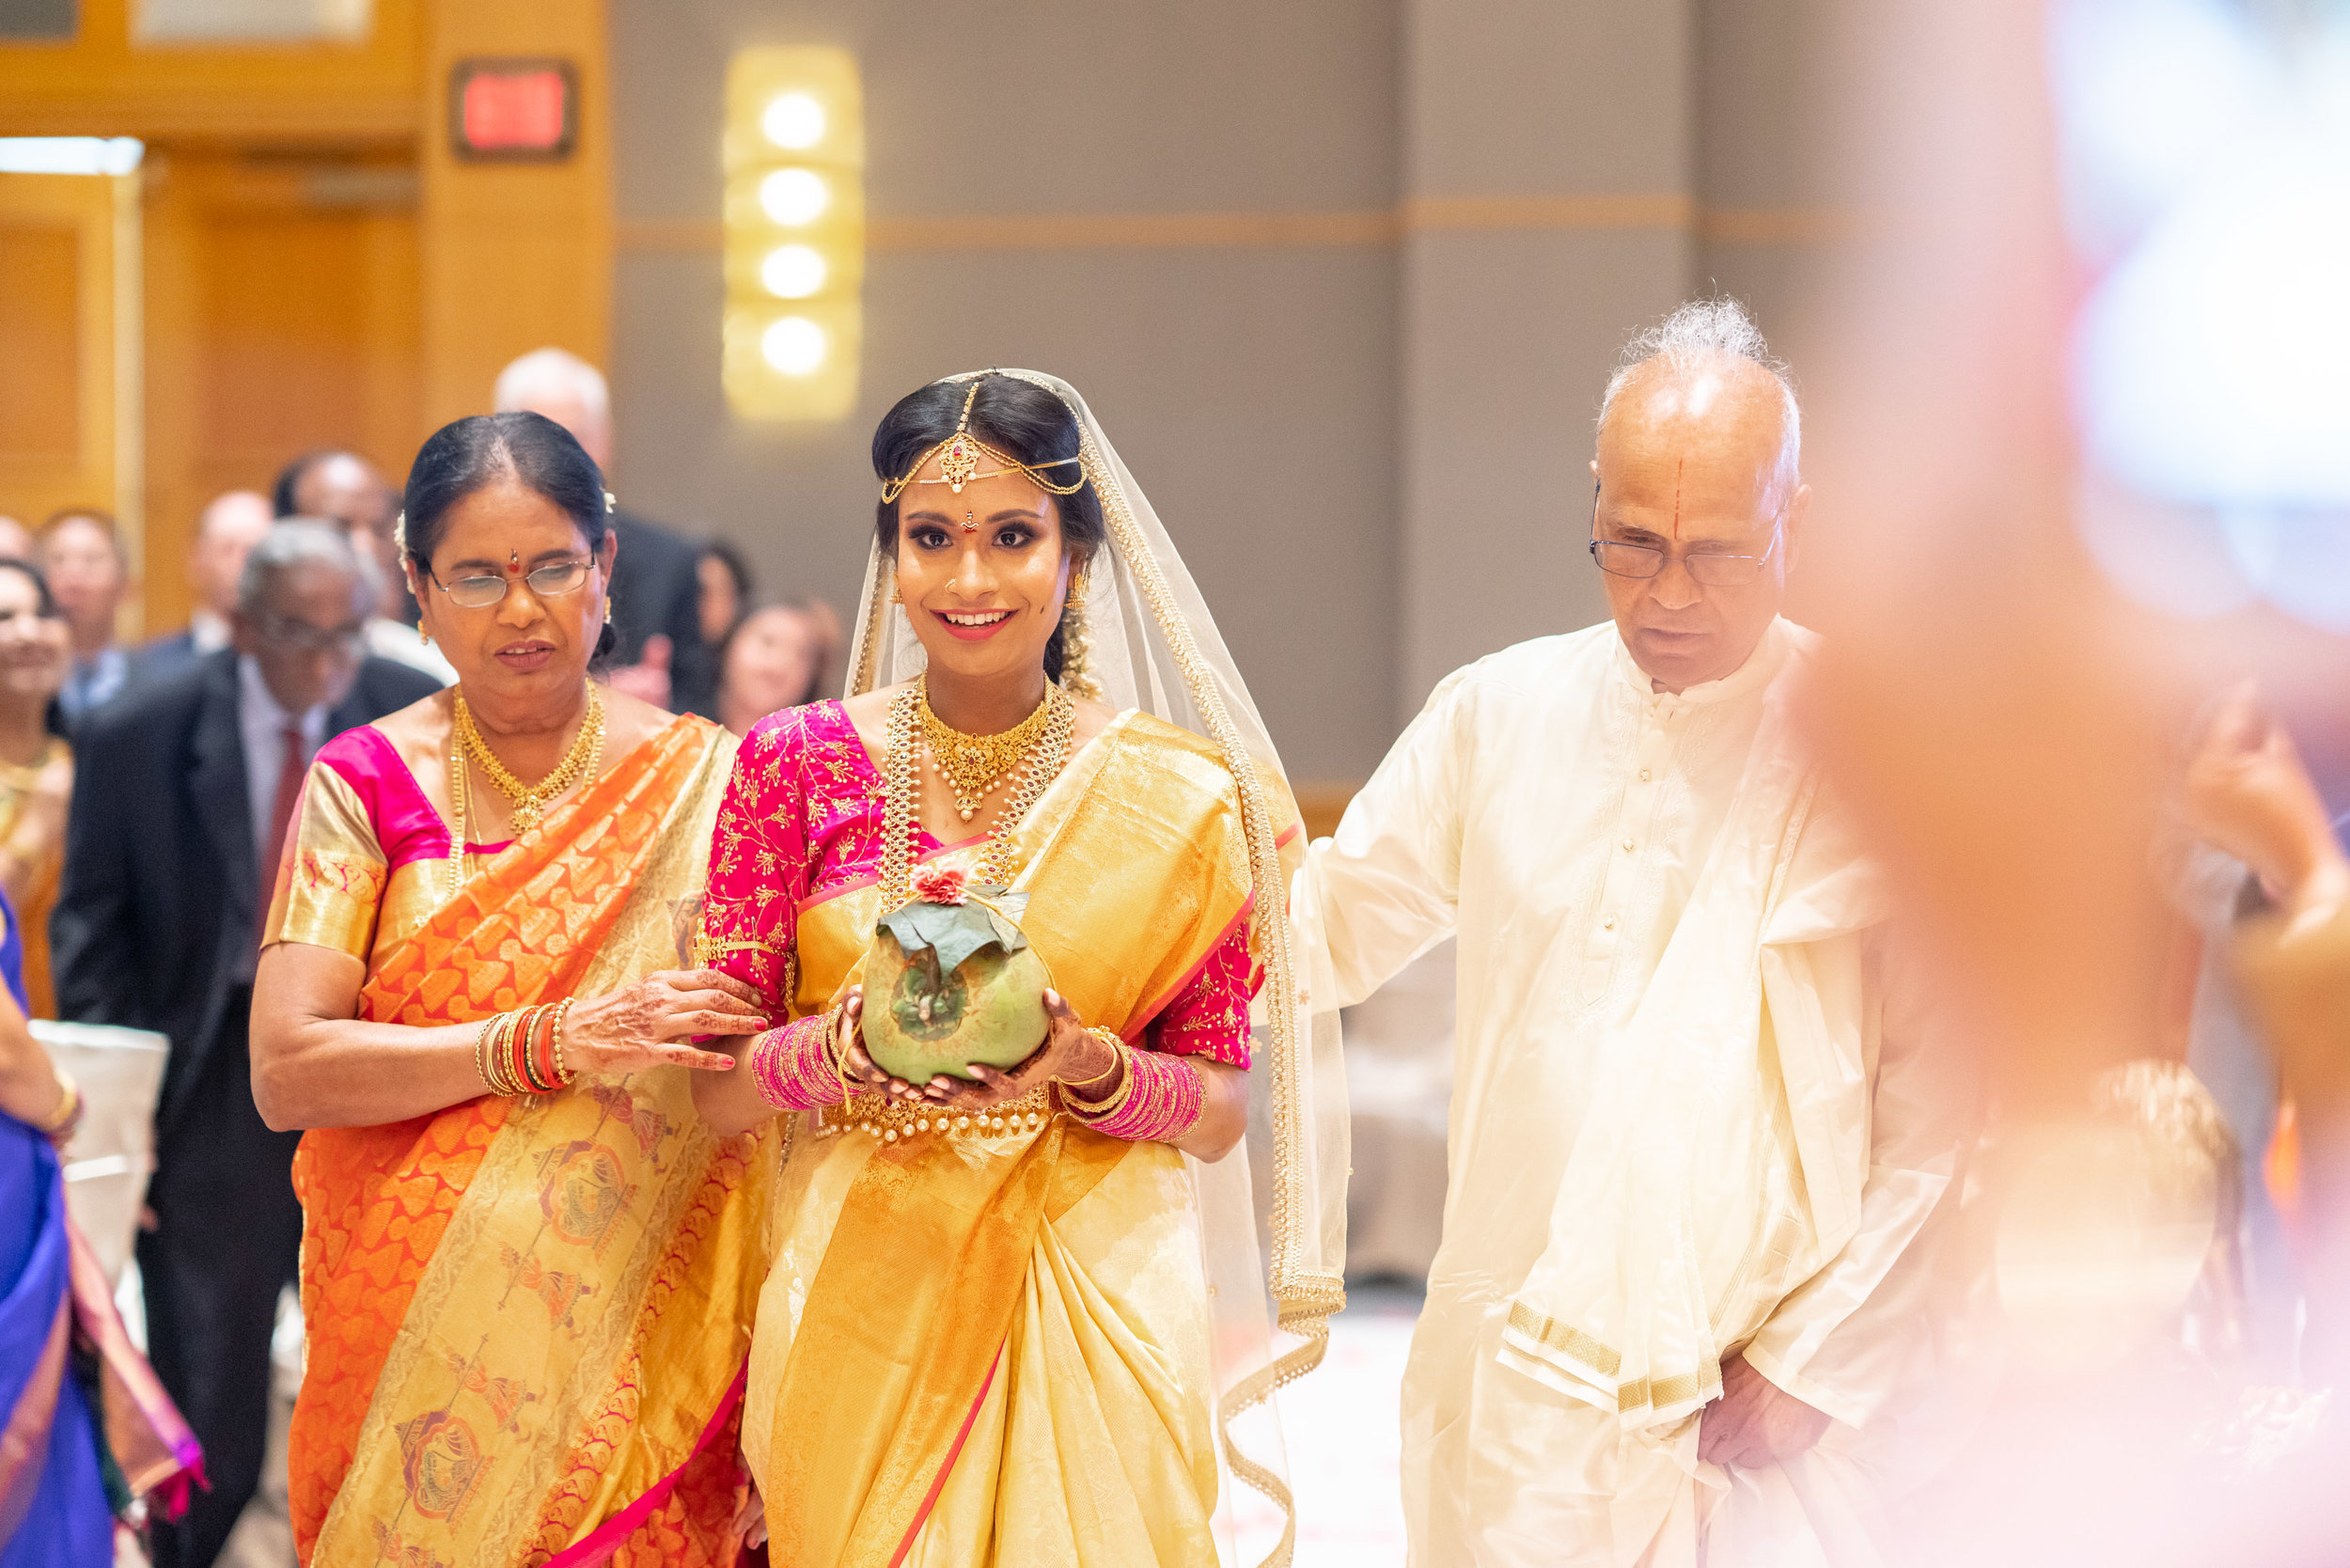 Indian bride walking down the aisle at bethesda north marriott wedding